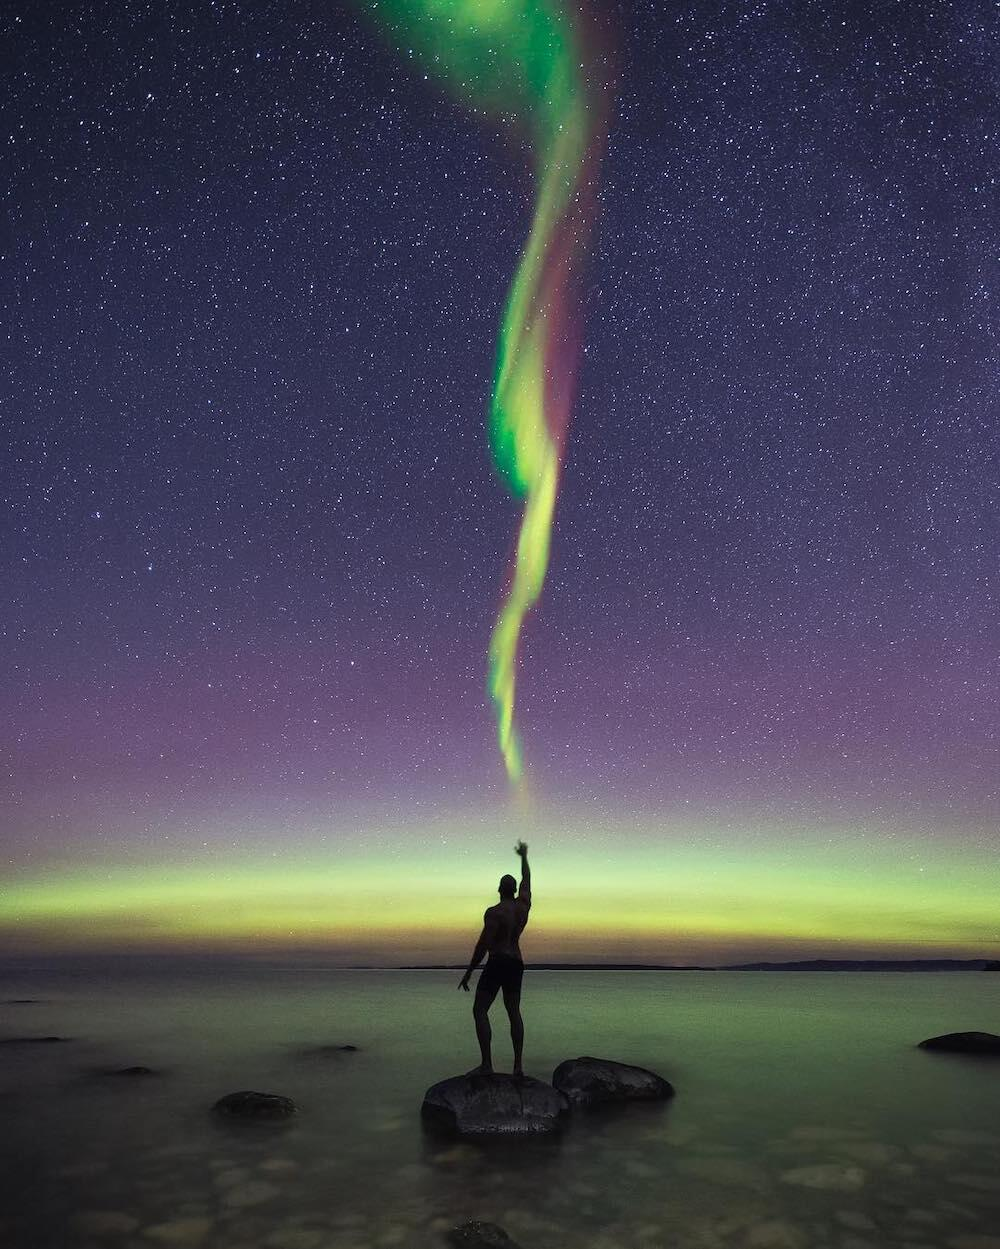 Person standing on a rock near lake shore and reaching up to touch Northern Lights in sky